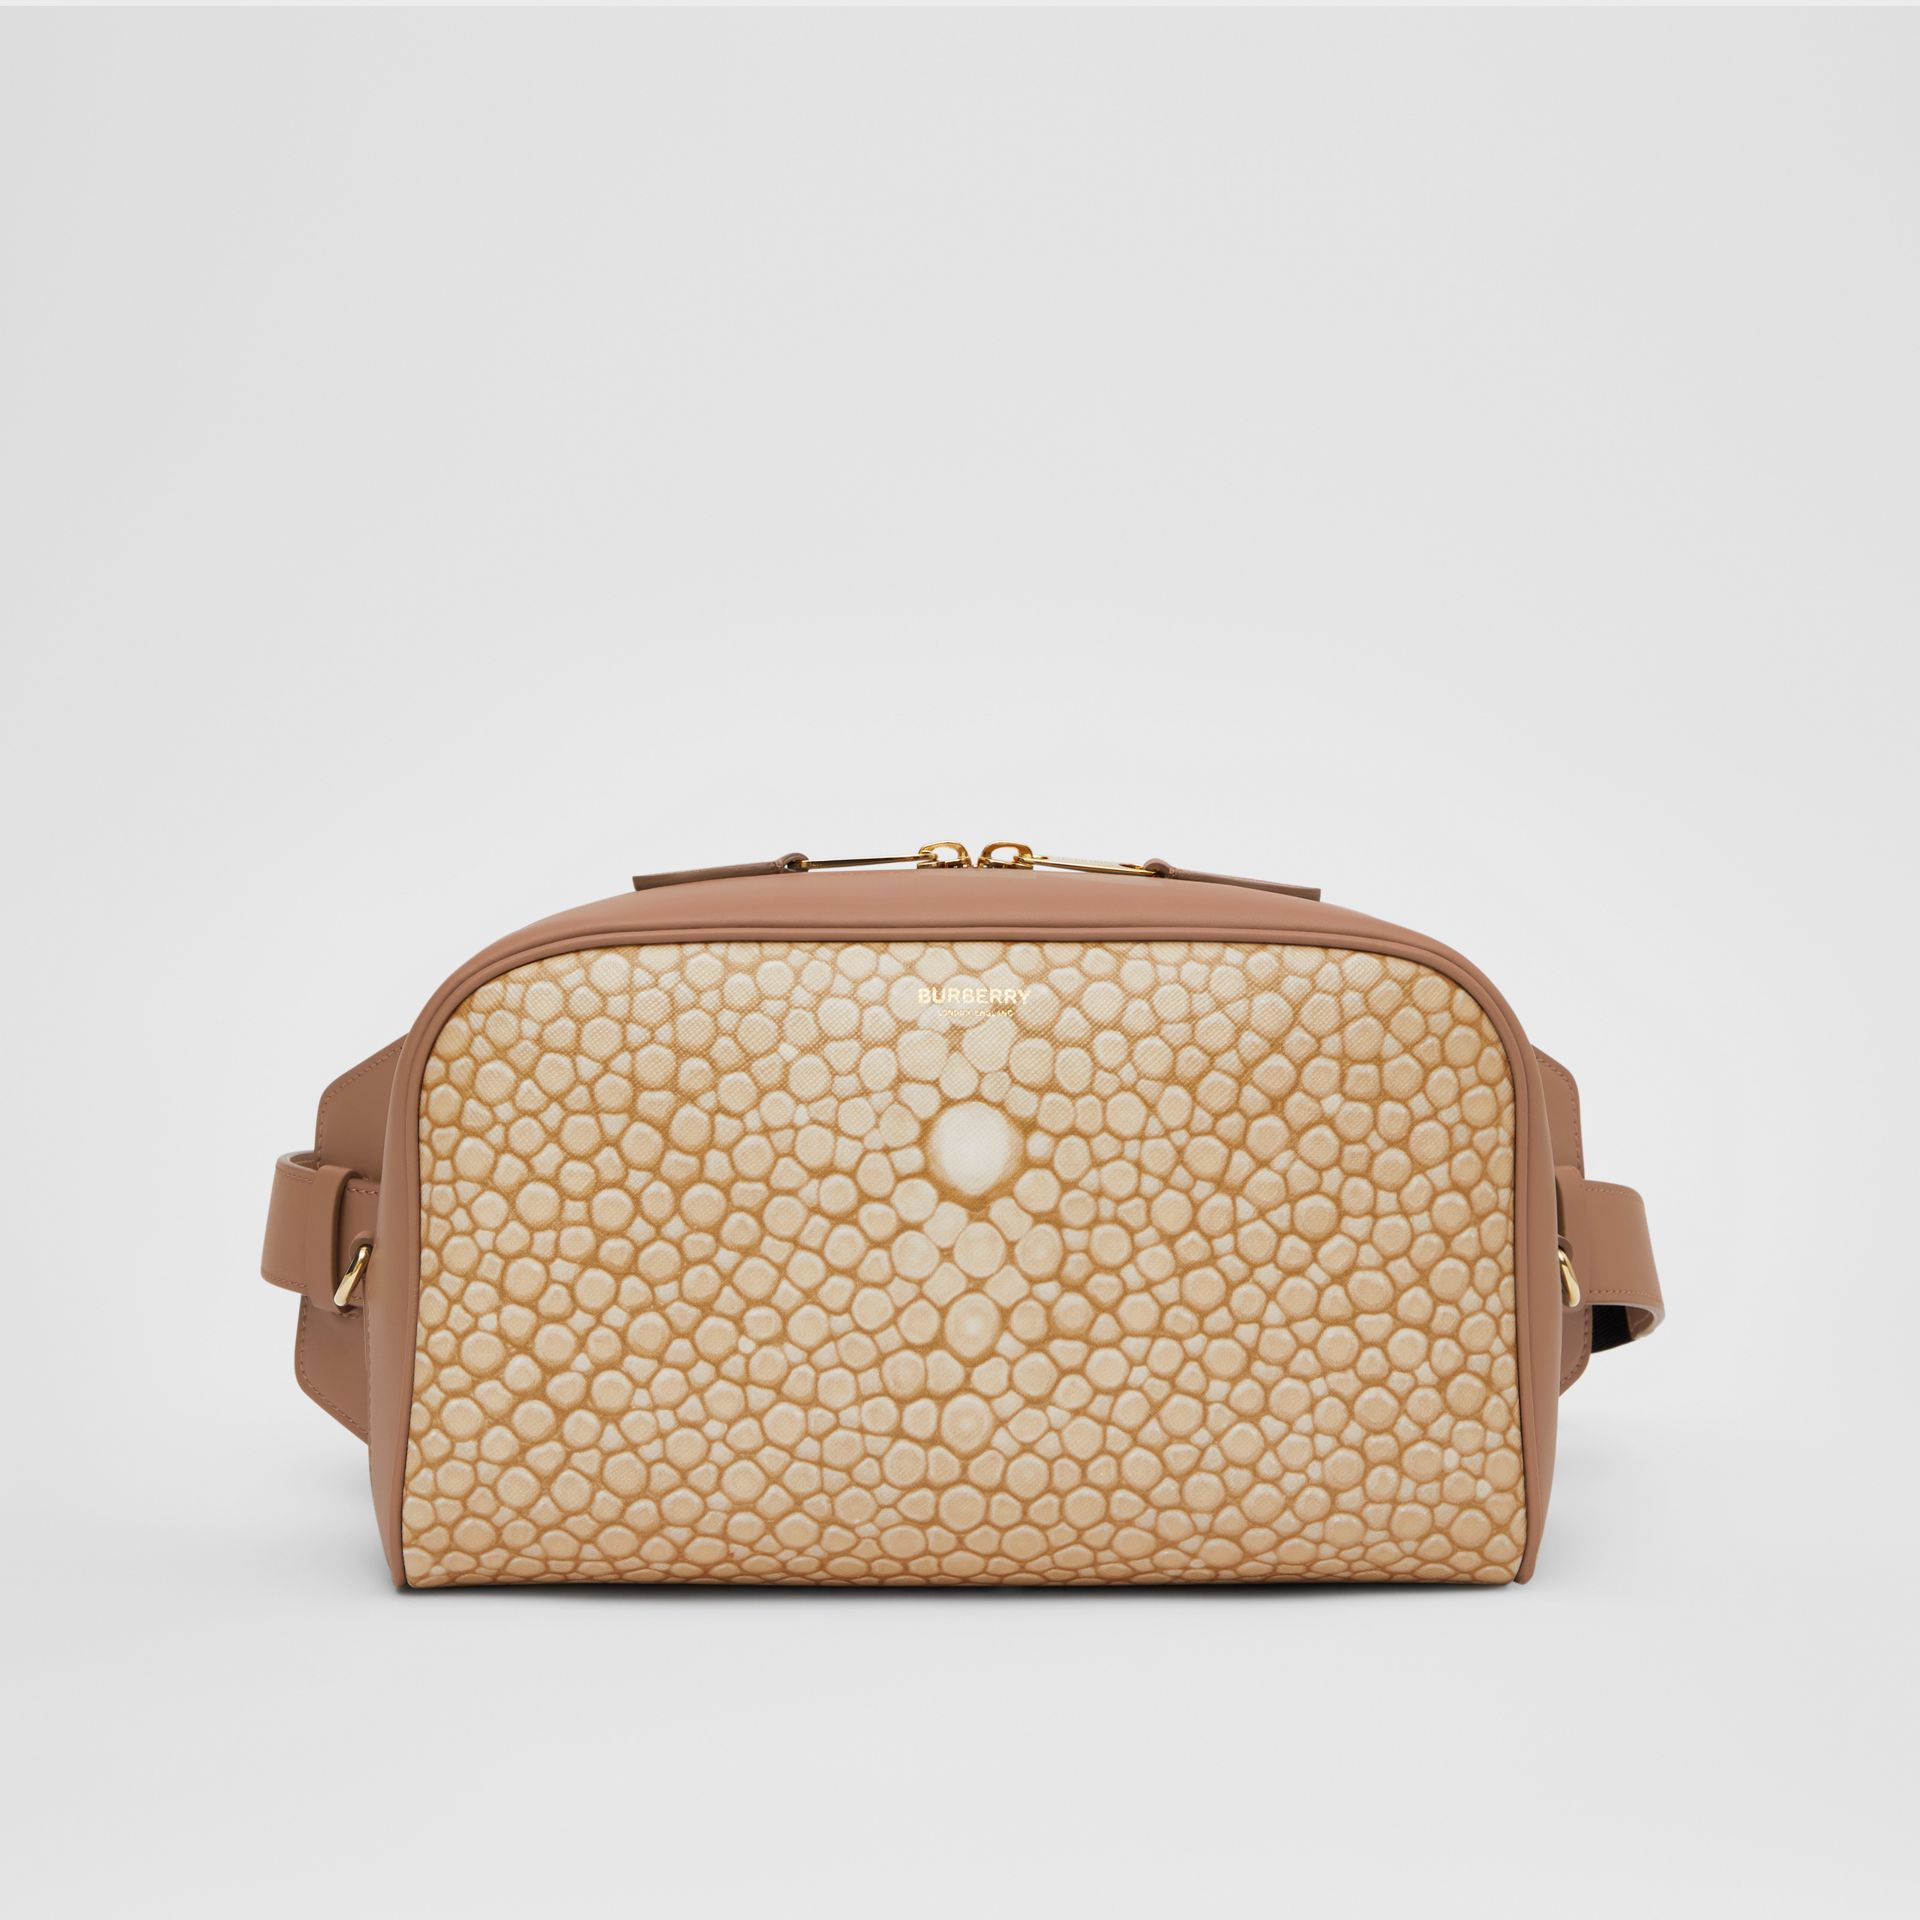 Fish-scale Print and Leather Cube Bum Bag in Light Sand - Women | Burberry Australia - gallery image 0